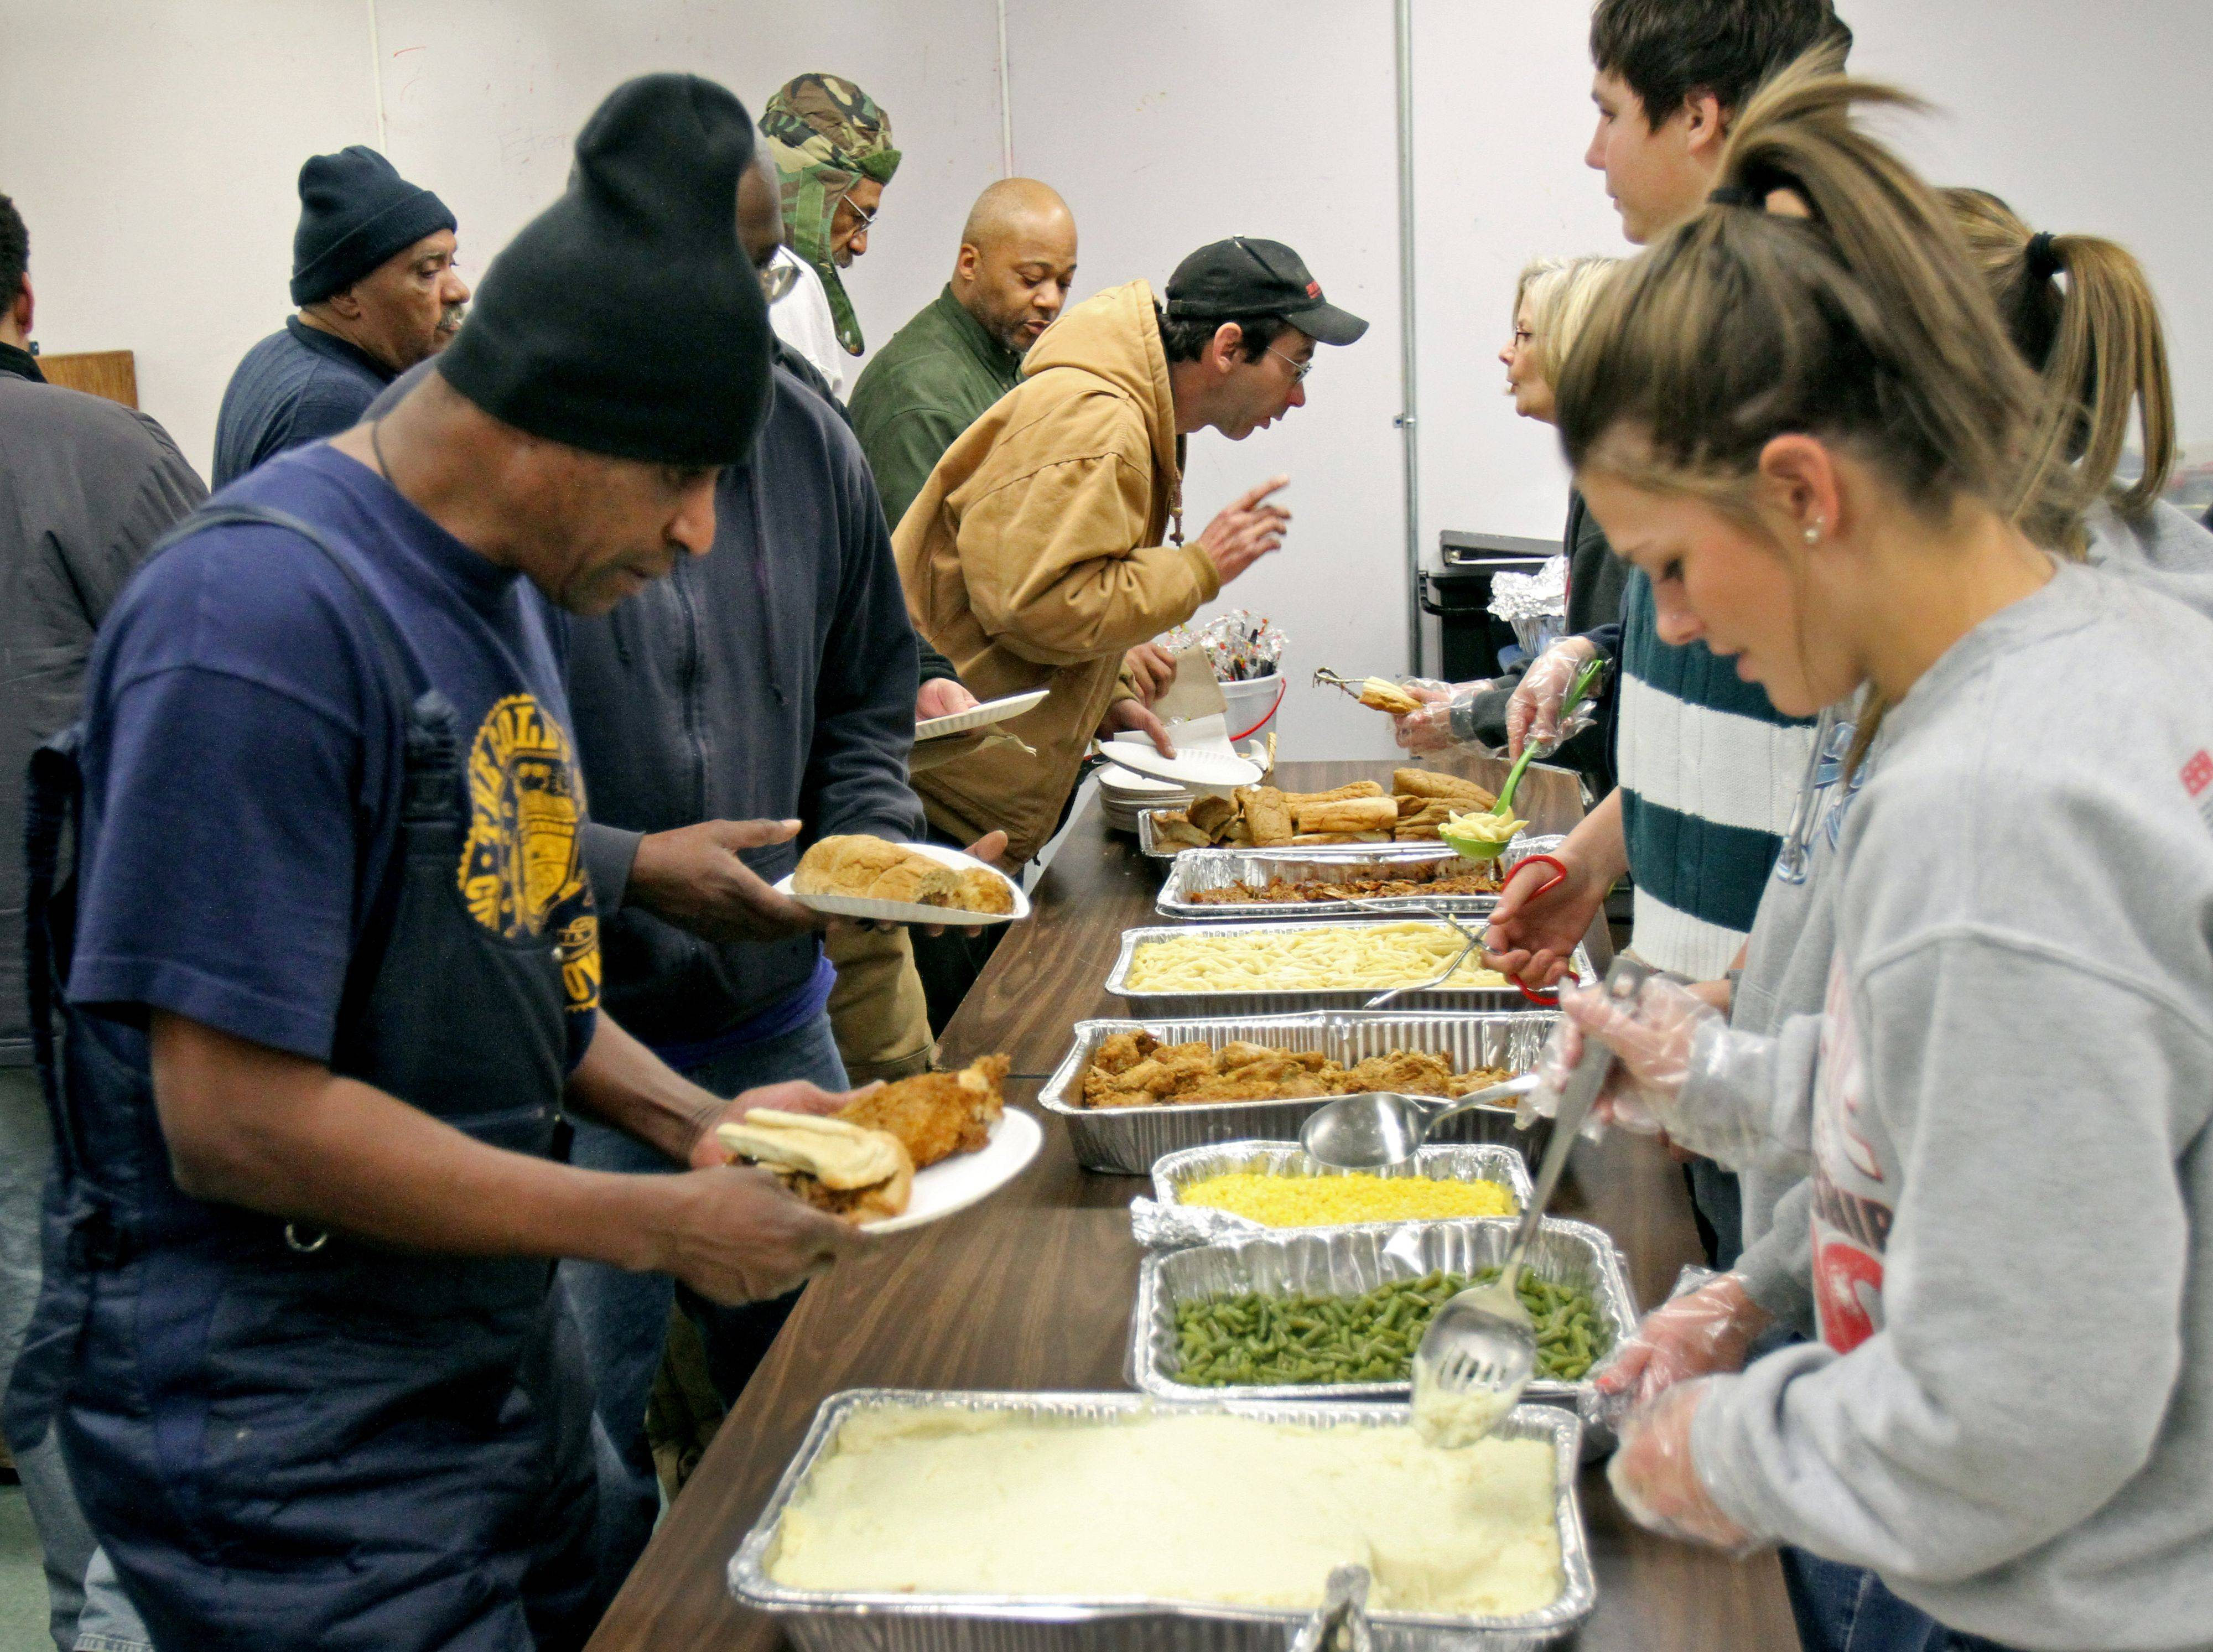 PADS guests line up for a meal as volunteers dish out some food at the Libertyville PADS shelter sponsored by St. Joseph Catholic Church Wednesday. Many of the volunteers were from First Presbyterian Church in Libertyville. About 35 men showed up to the facility Wednesday.